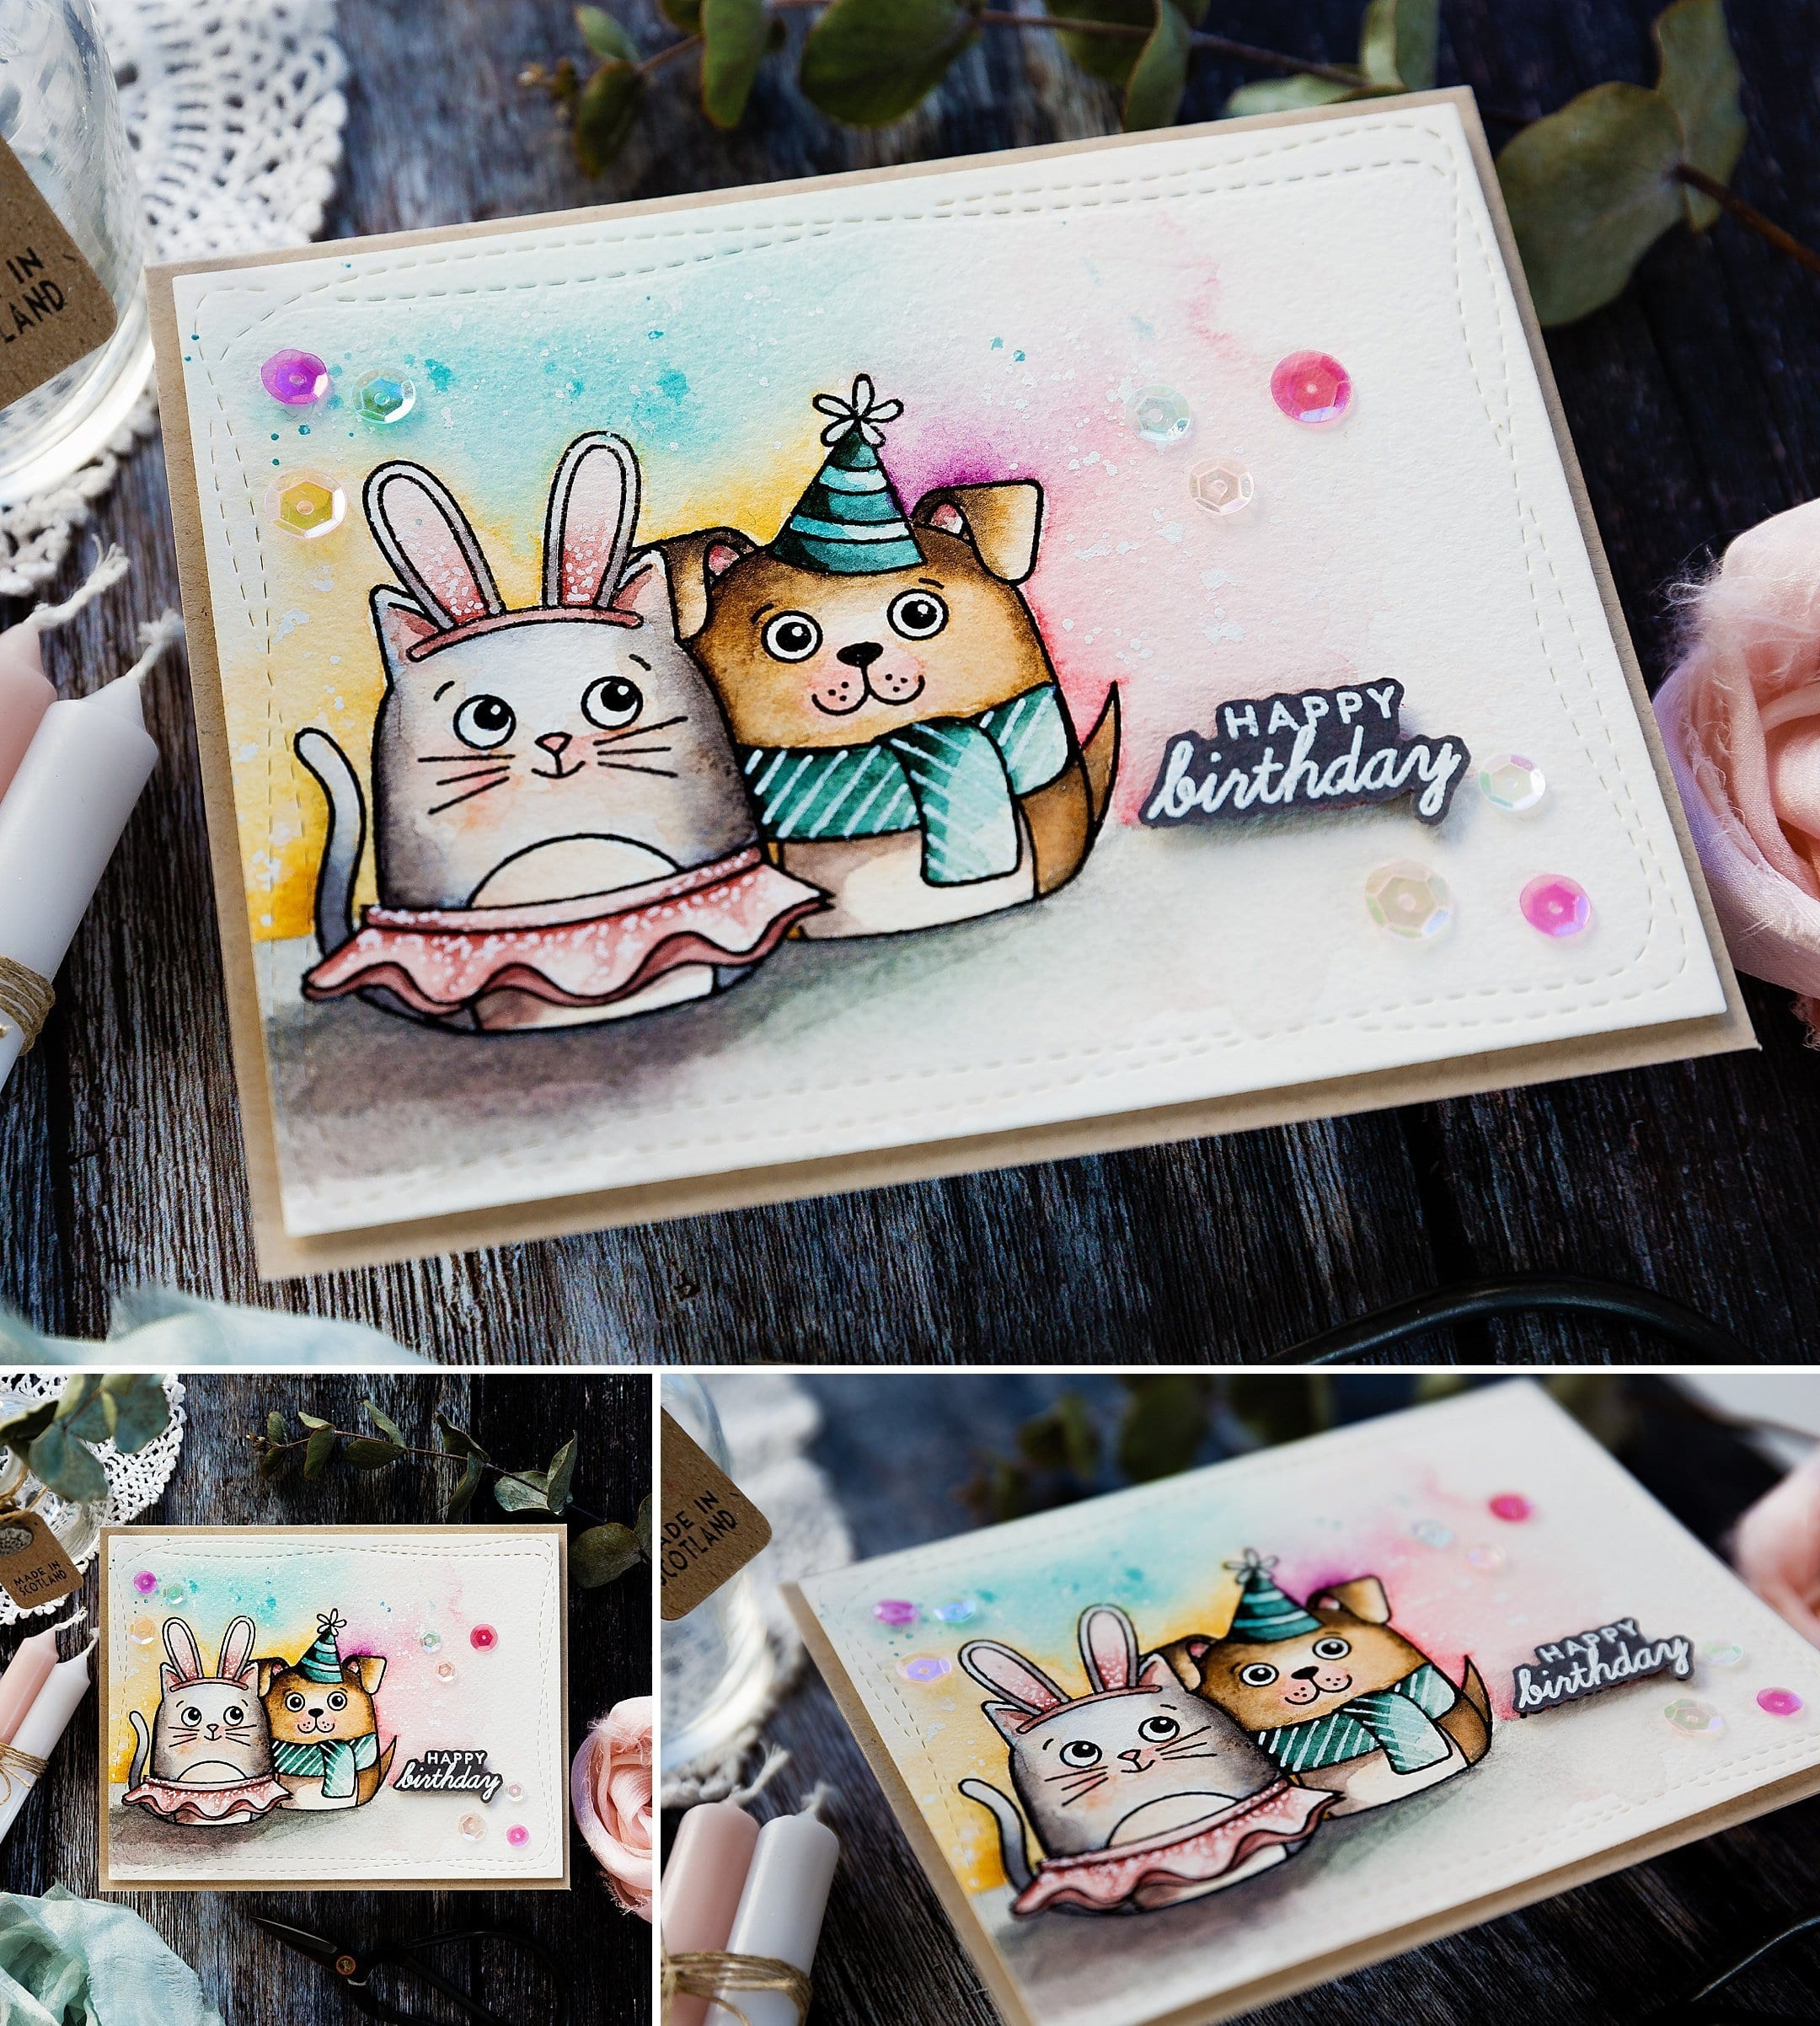 Cute cat and dog watercoloured handmade birthday card by Debby Hughes using supplies from Simon Says Stamp. Find out more here: https://limedoodledesign.com/2019/03/watercoloured-dress-up-critters/